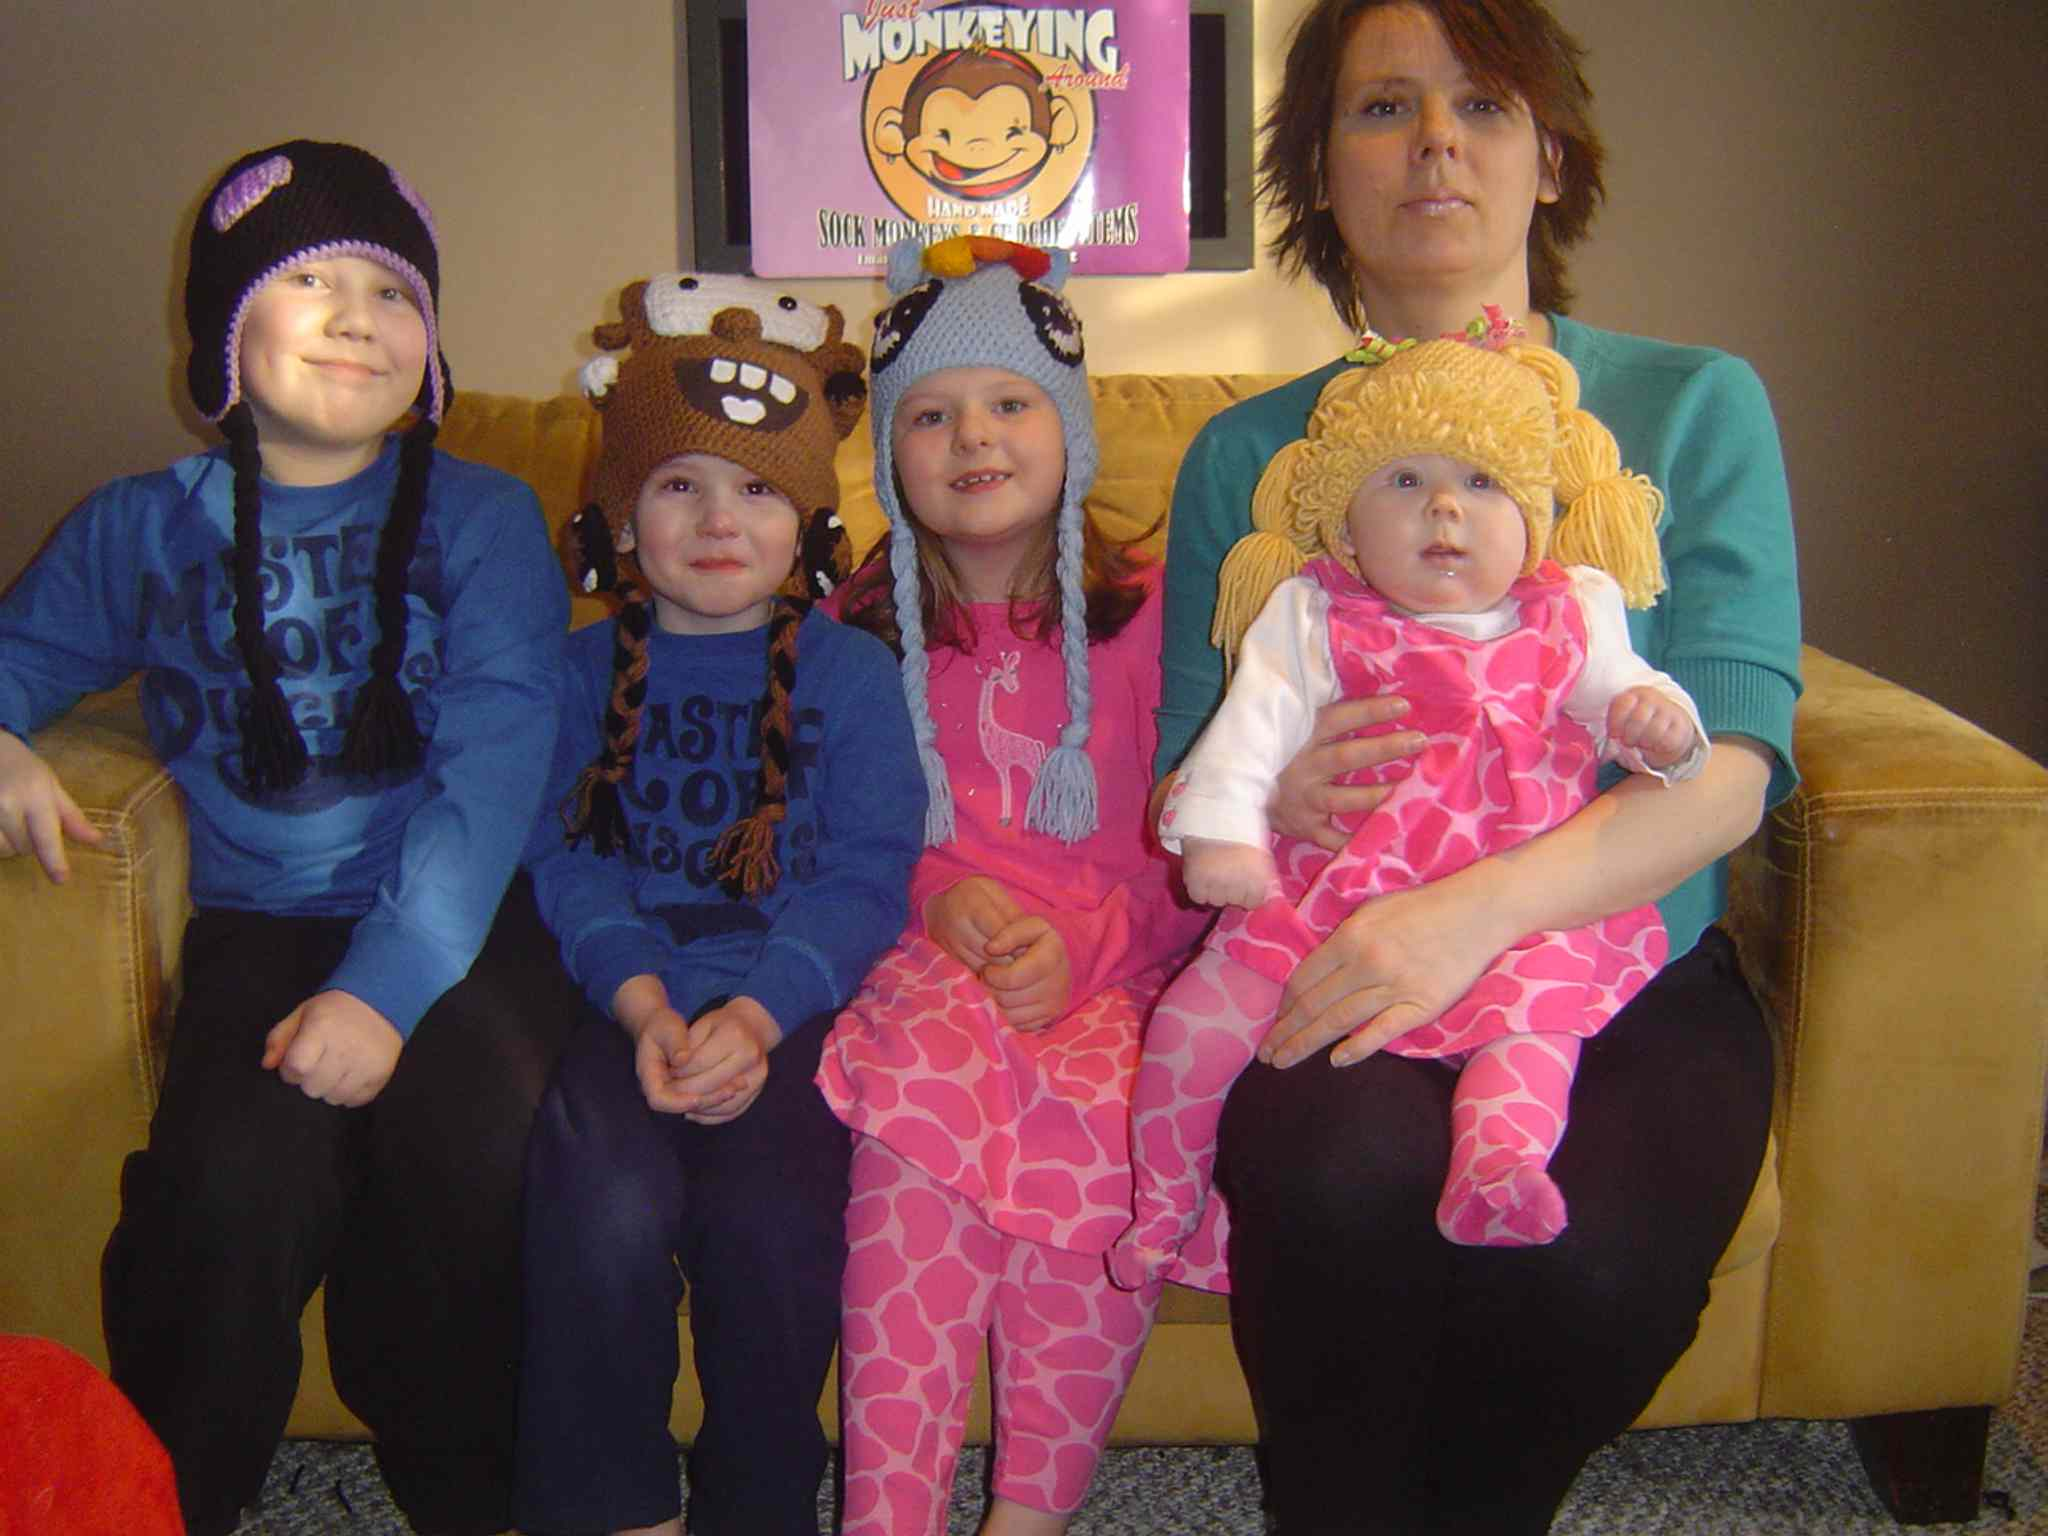 Michelle Ducharme holds daughter Evelyn, with children (left) William, Richard and Katherine, all wearing hats designed and crocheted by Michelle.